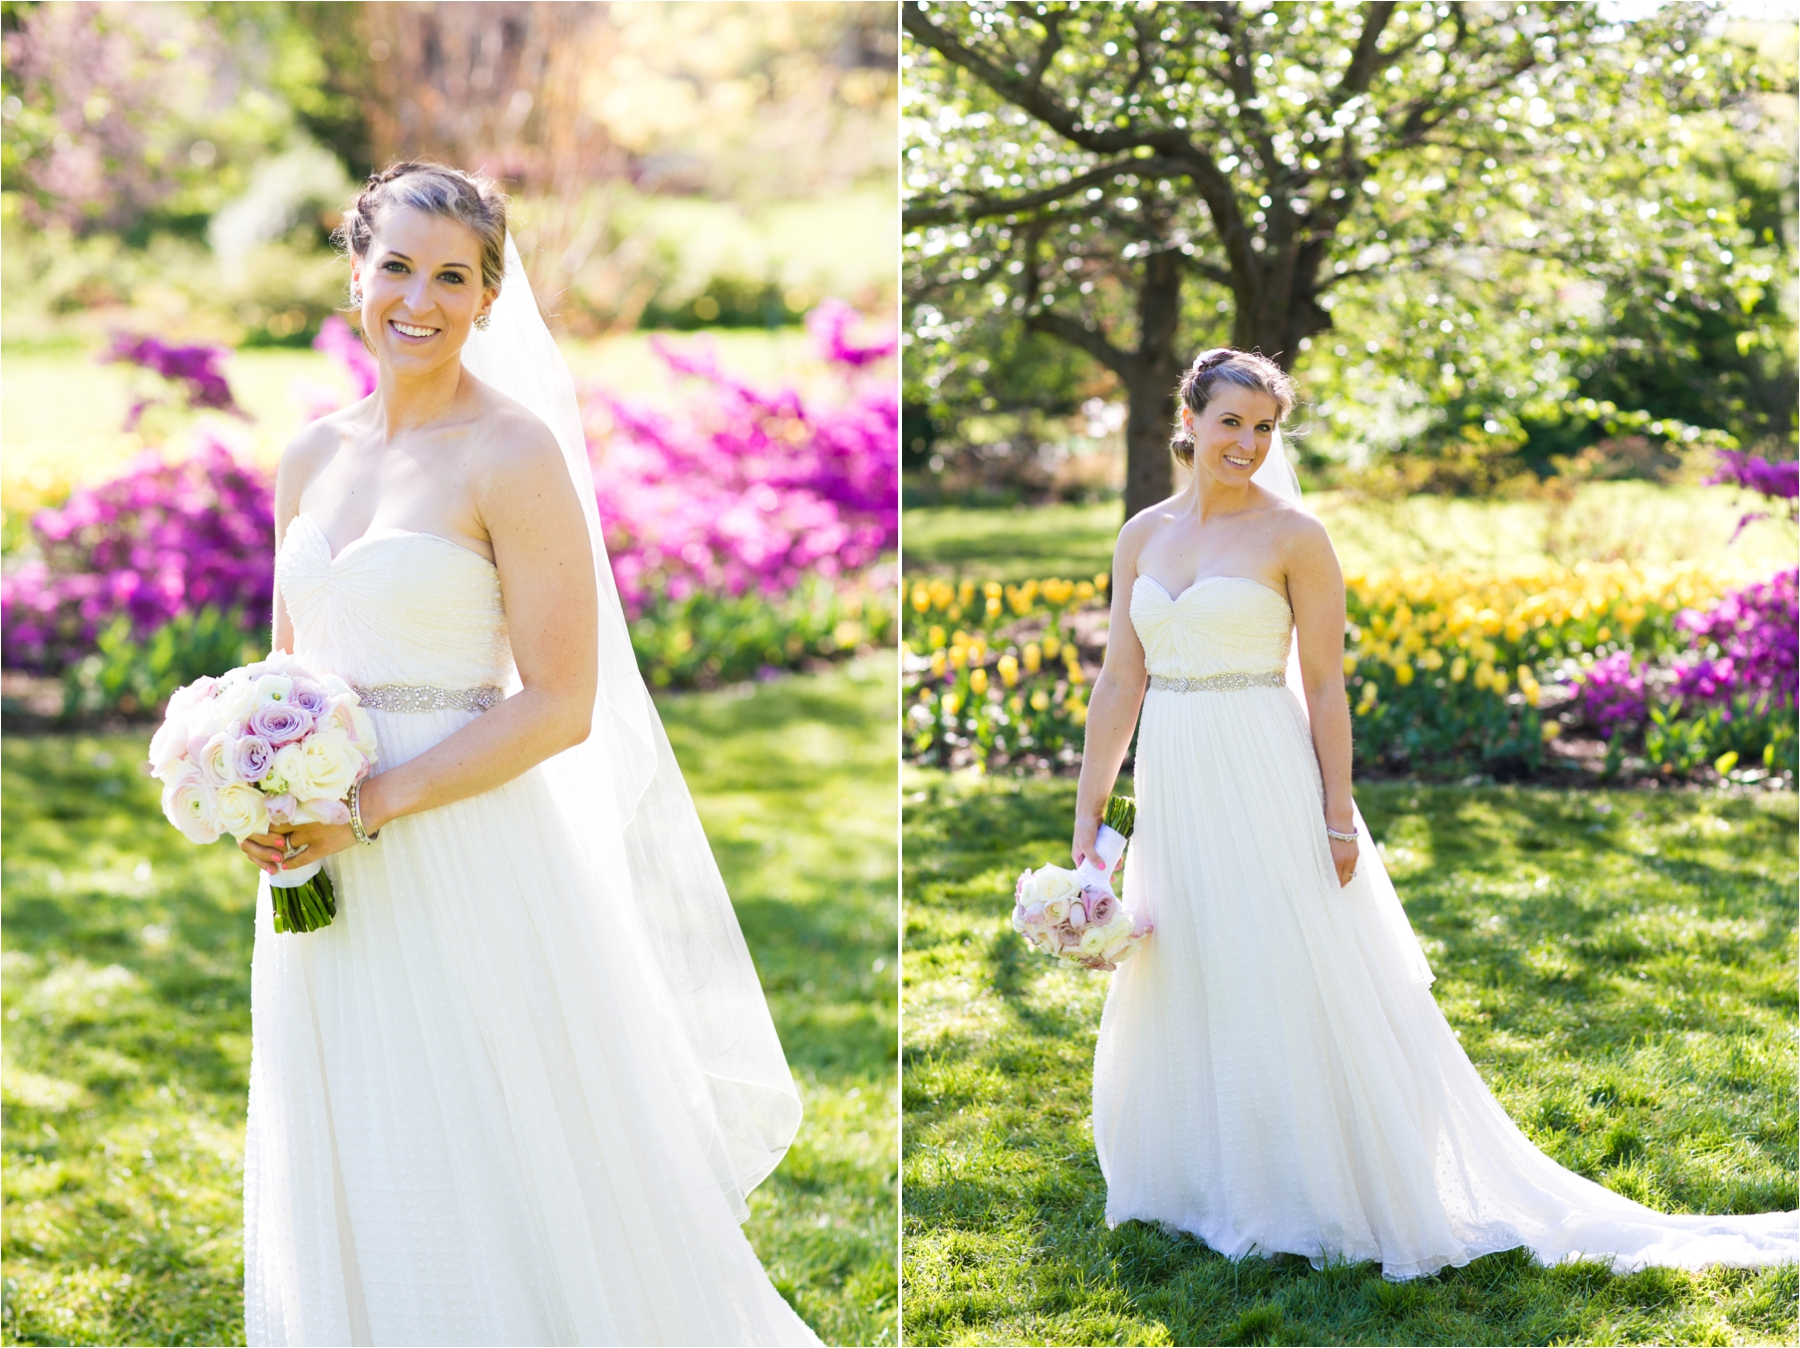 Bridal Portraits: Sam